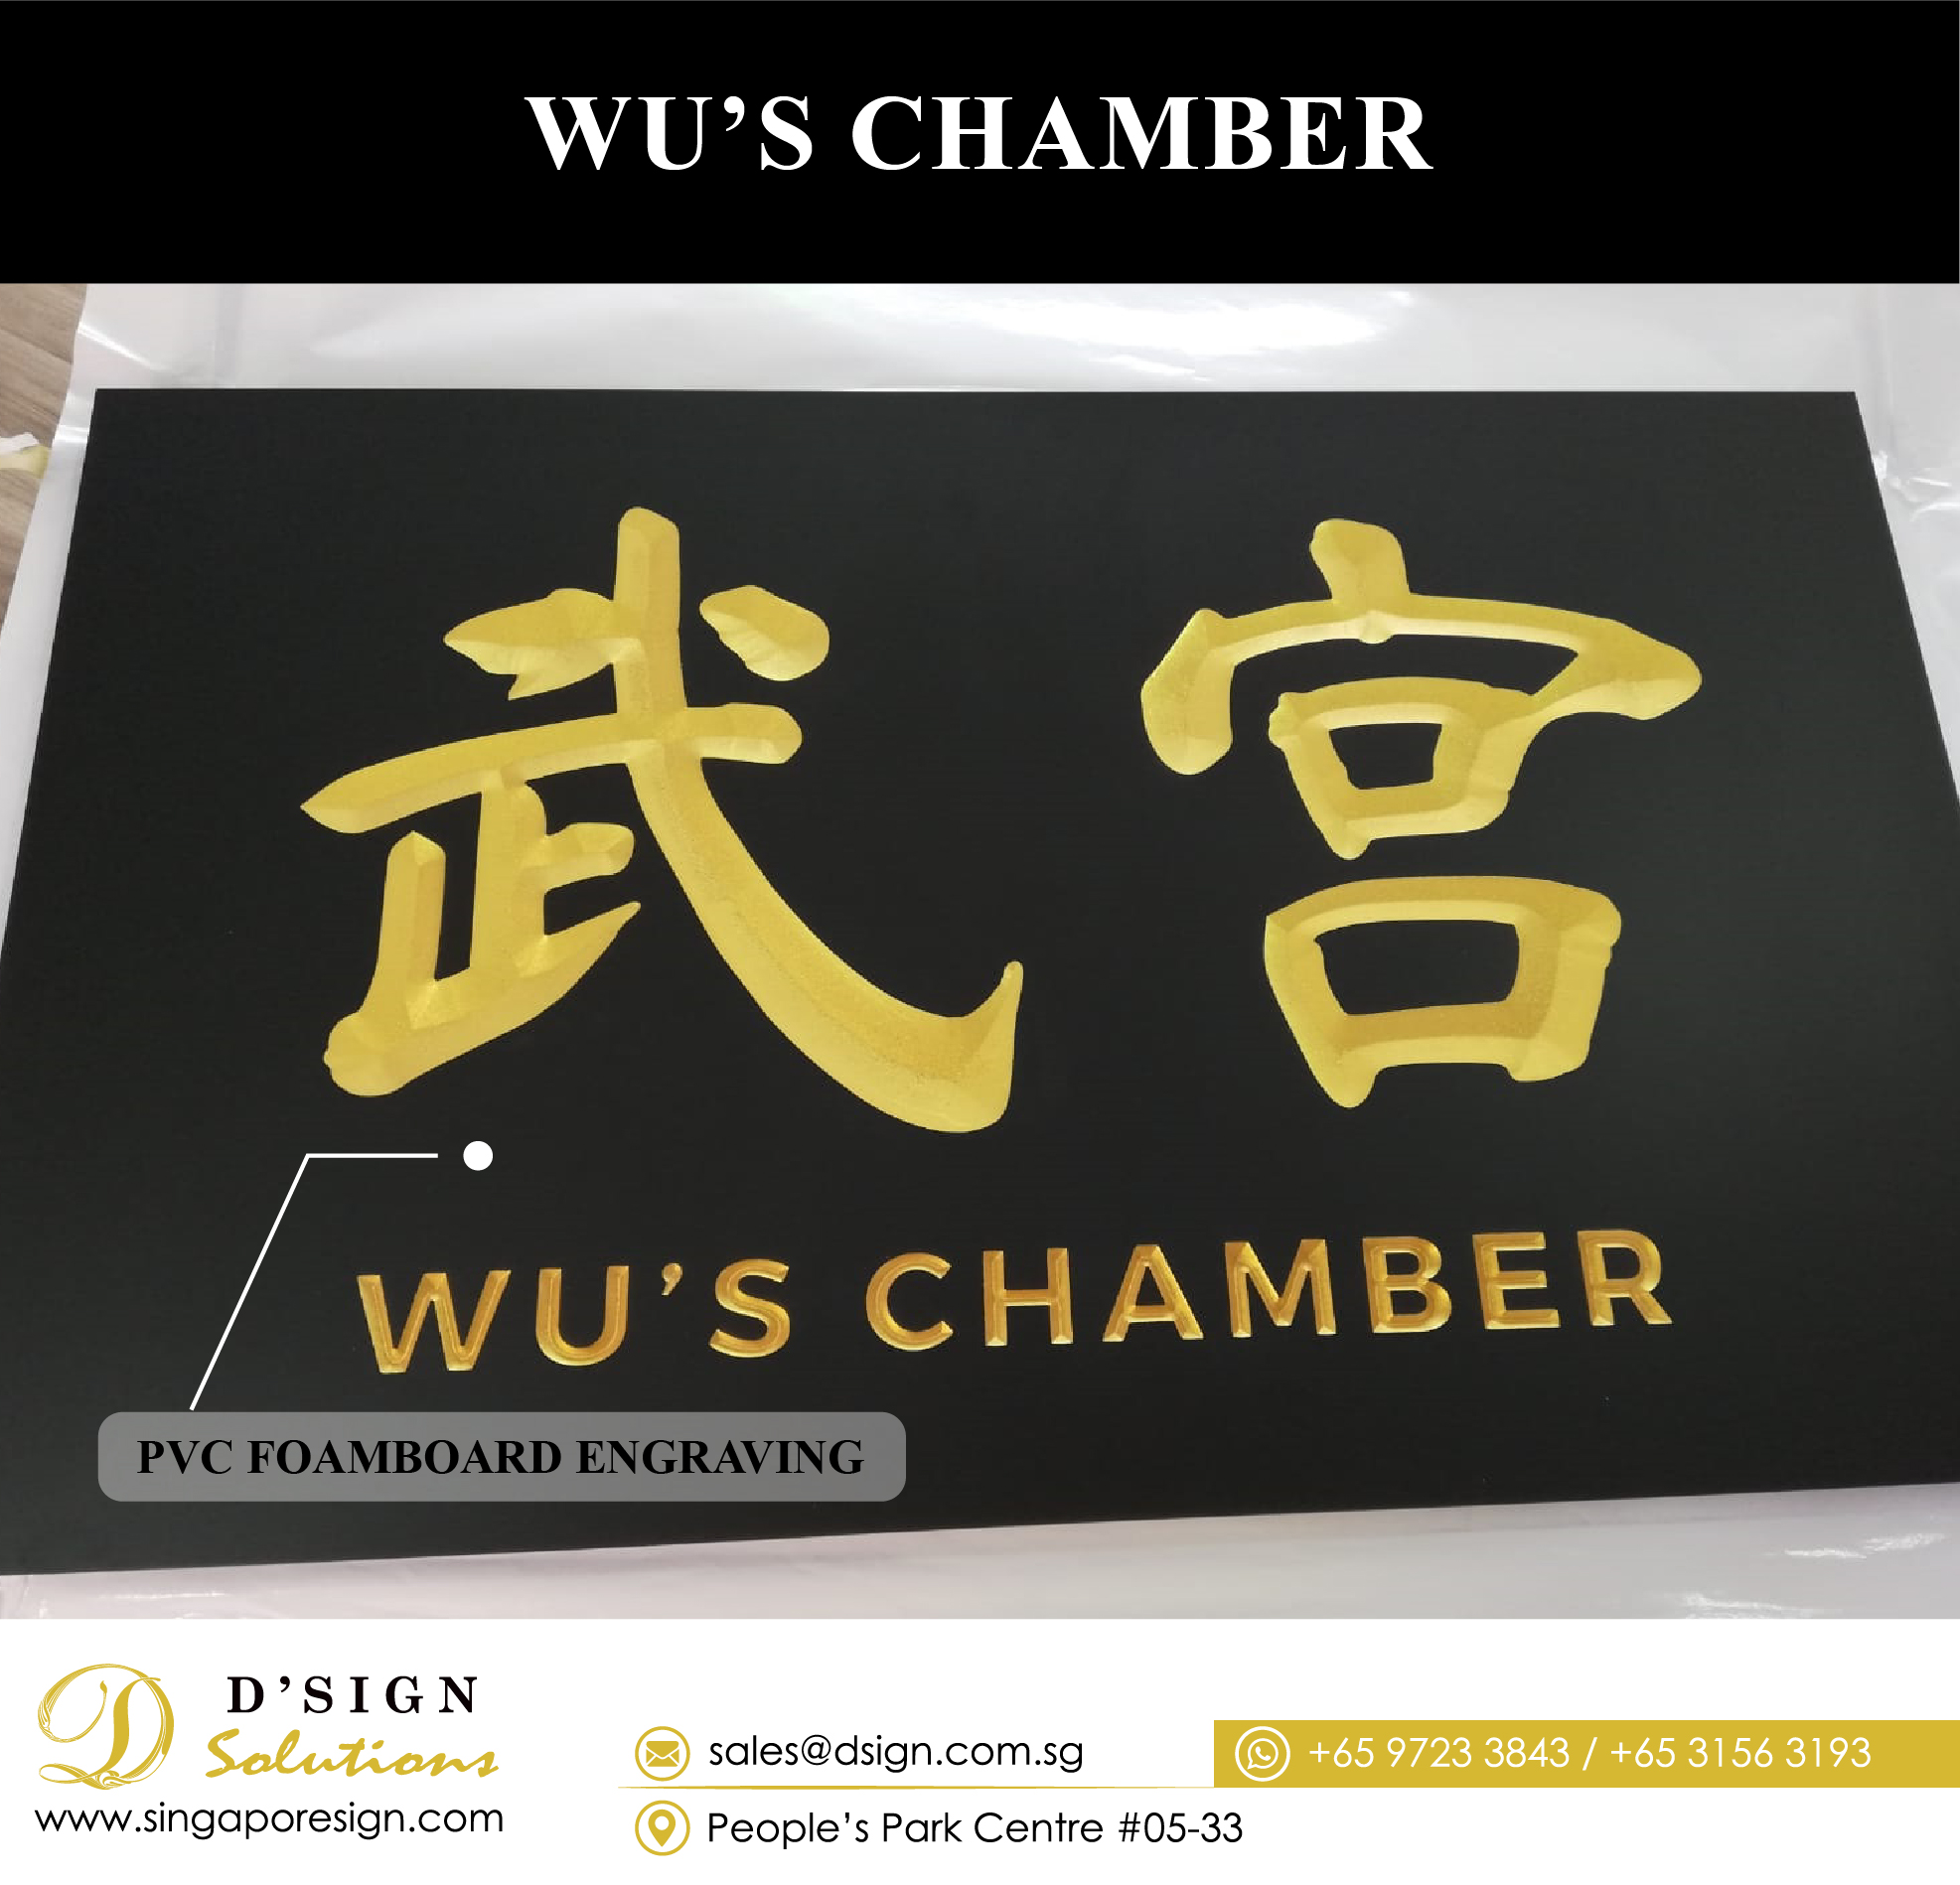 WU'S CHAMBER